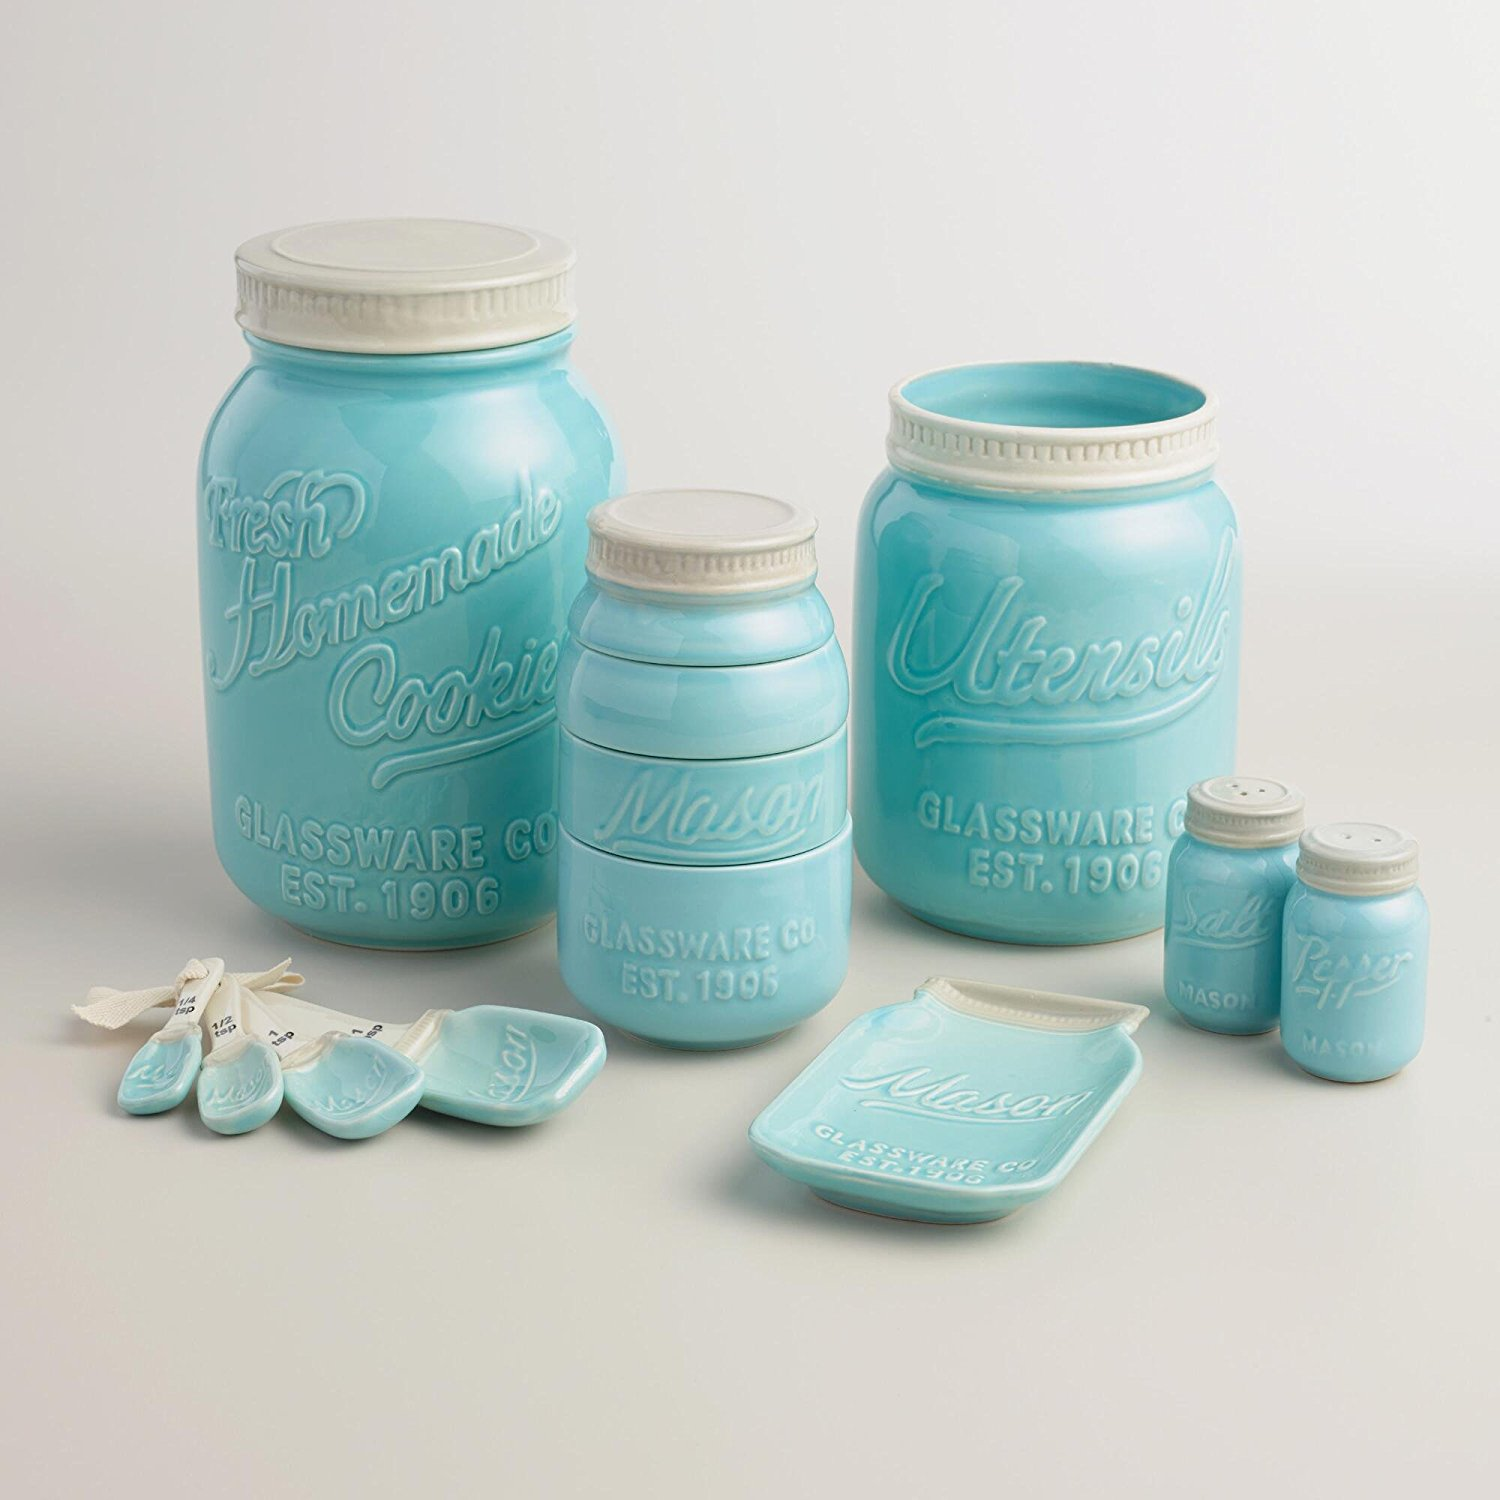 Ceramic Cookie Jar Sets Mason Jar Ceramic Spoon Rest By World Market Party